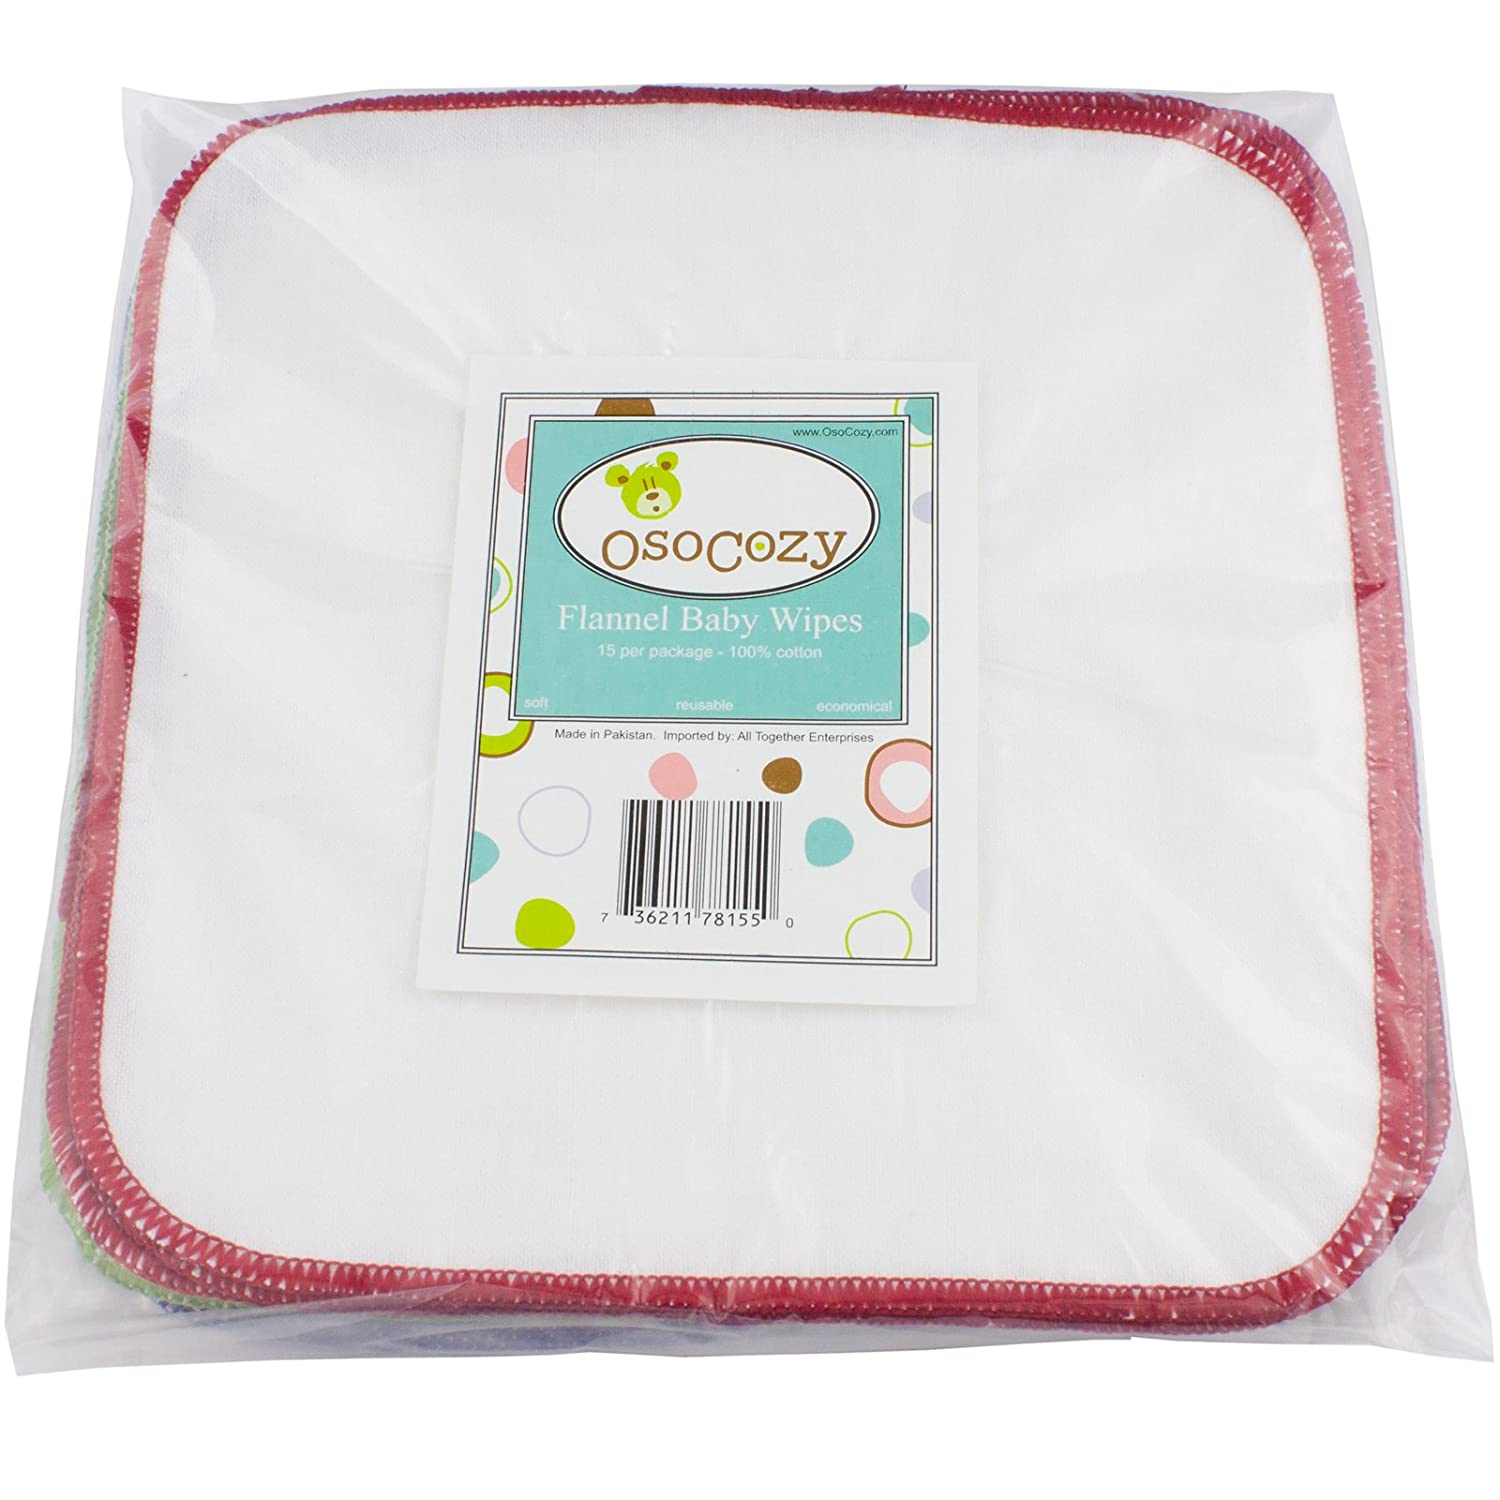 OsoCozy Flannel Baby Wipes - Reusable And Washable - 15 Pack (Unbleached)